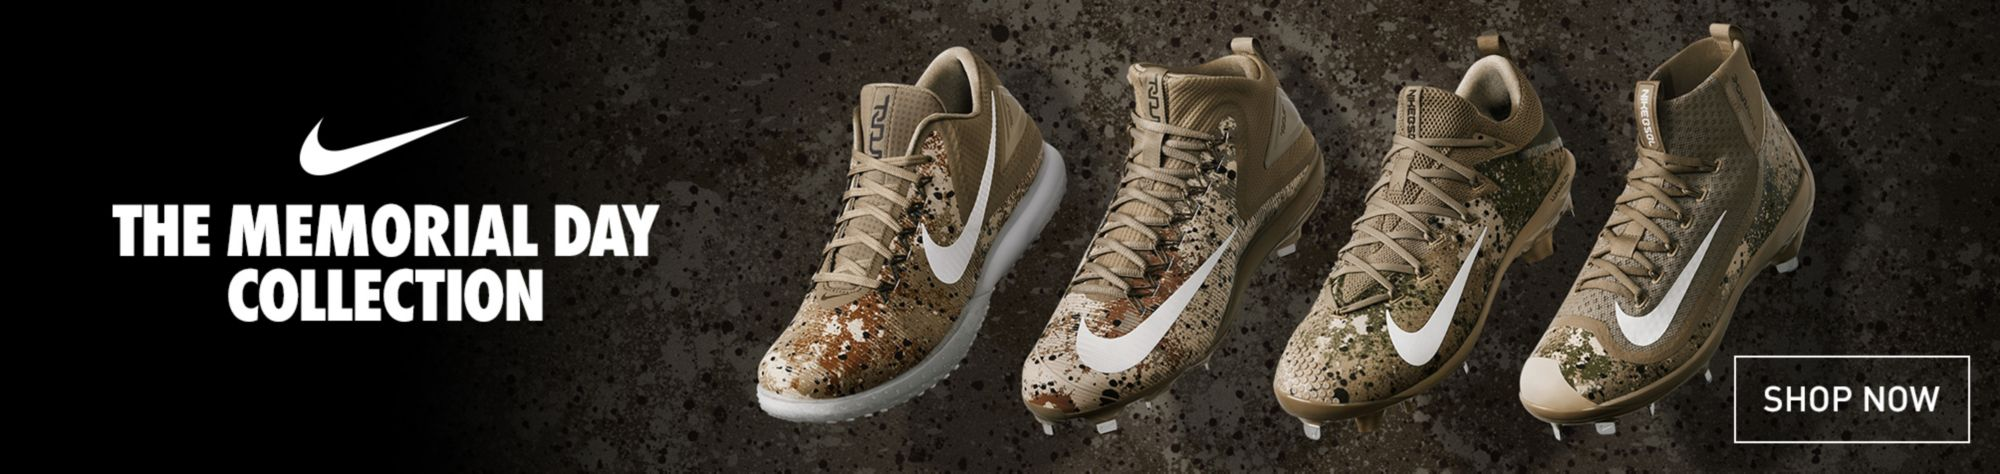 Shop Nike Memorial Day Baseball Cleats